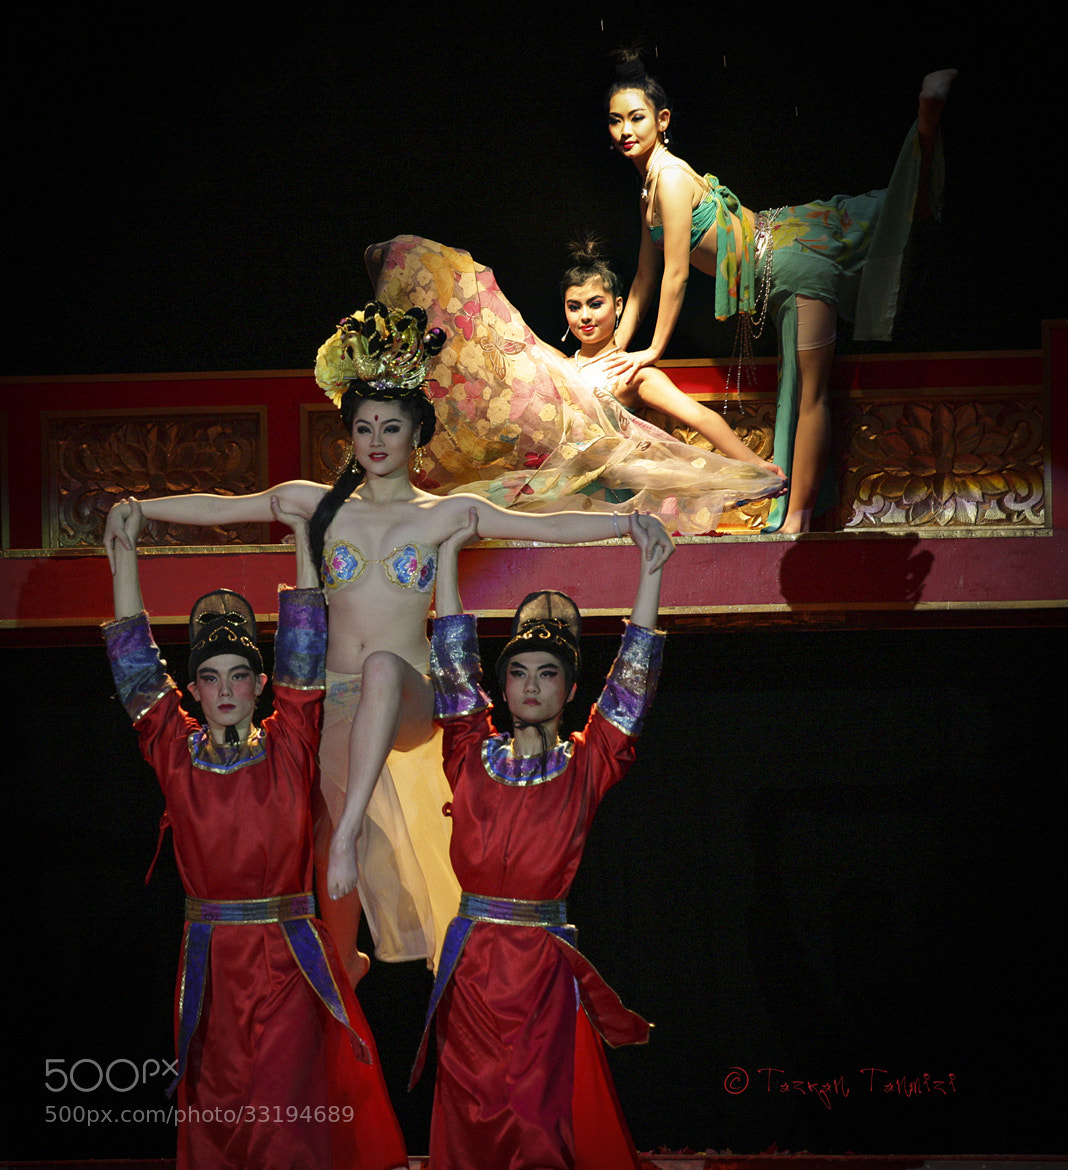 Photograph Chinese drama by Tazran Tanmizi on 500px